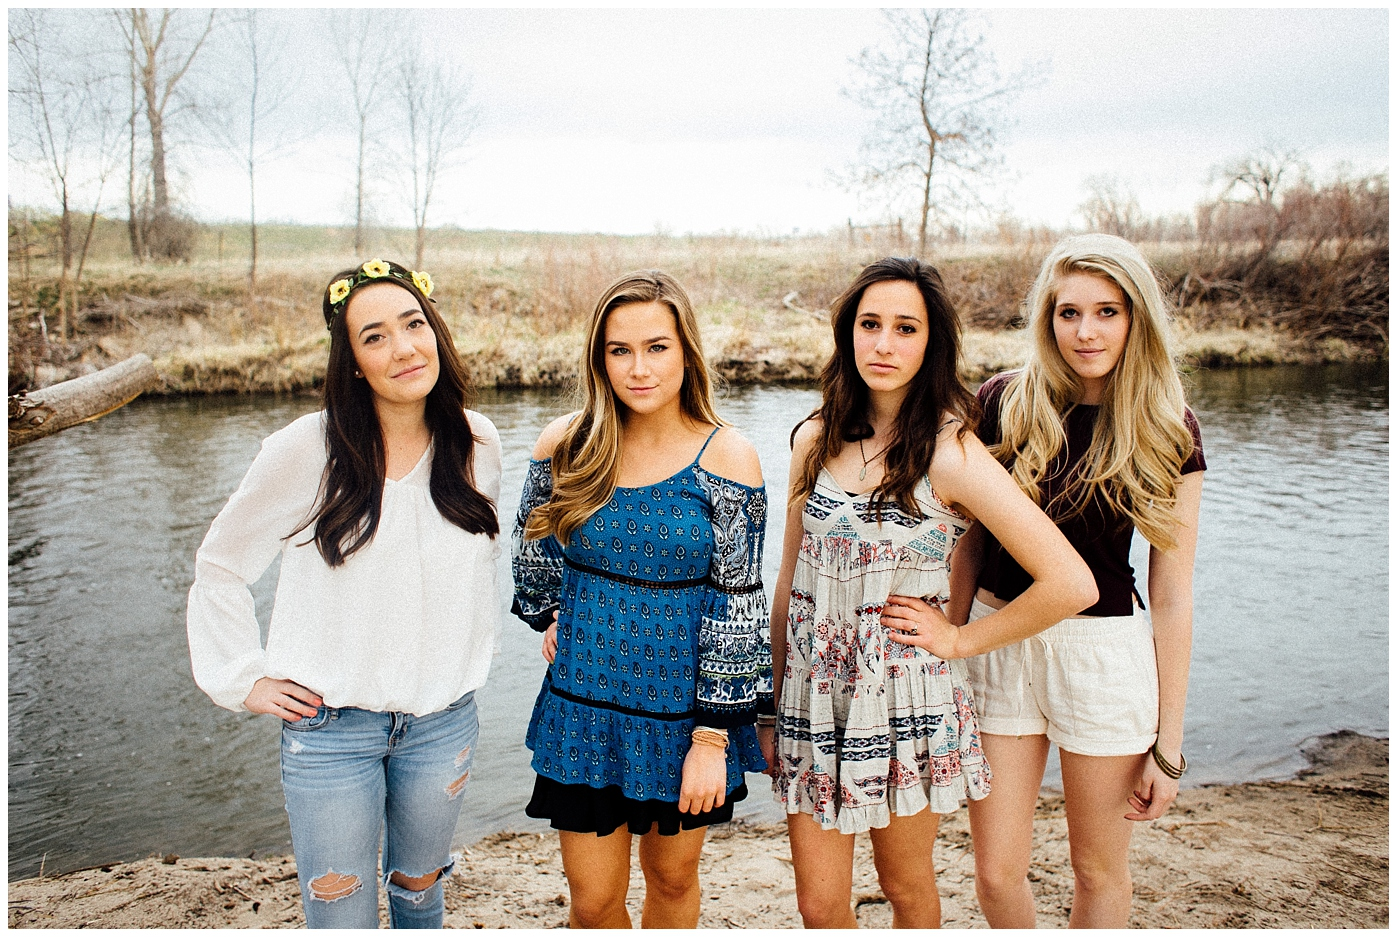 20160328BohoGlamping2017SeniorReps013_fort-collins-senior-photographer.jpg